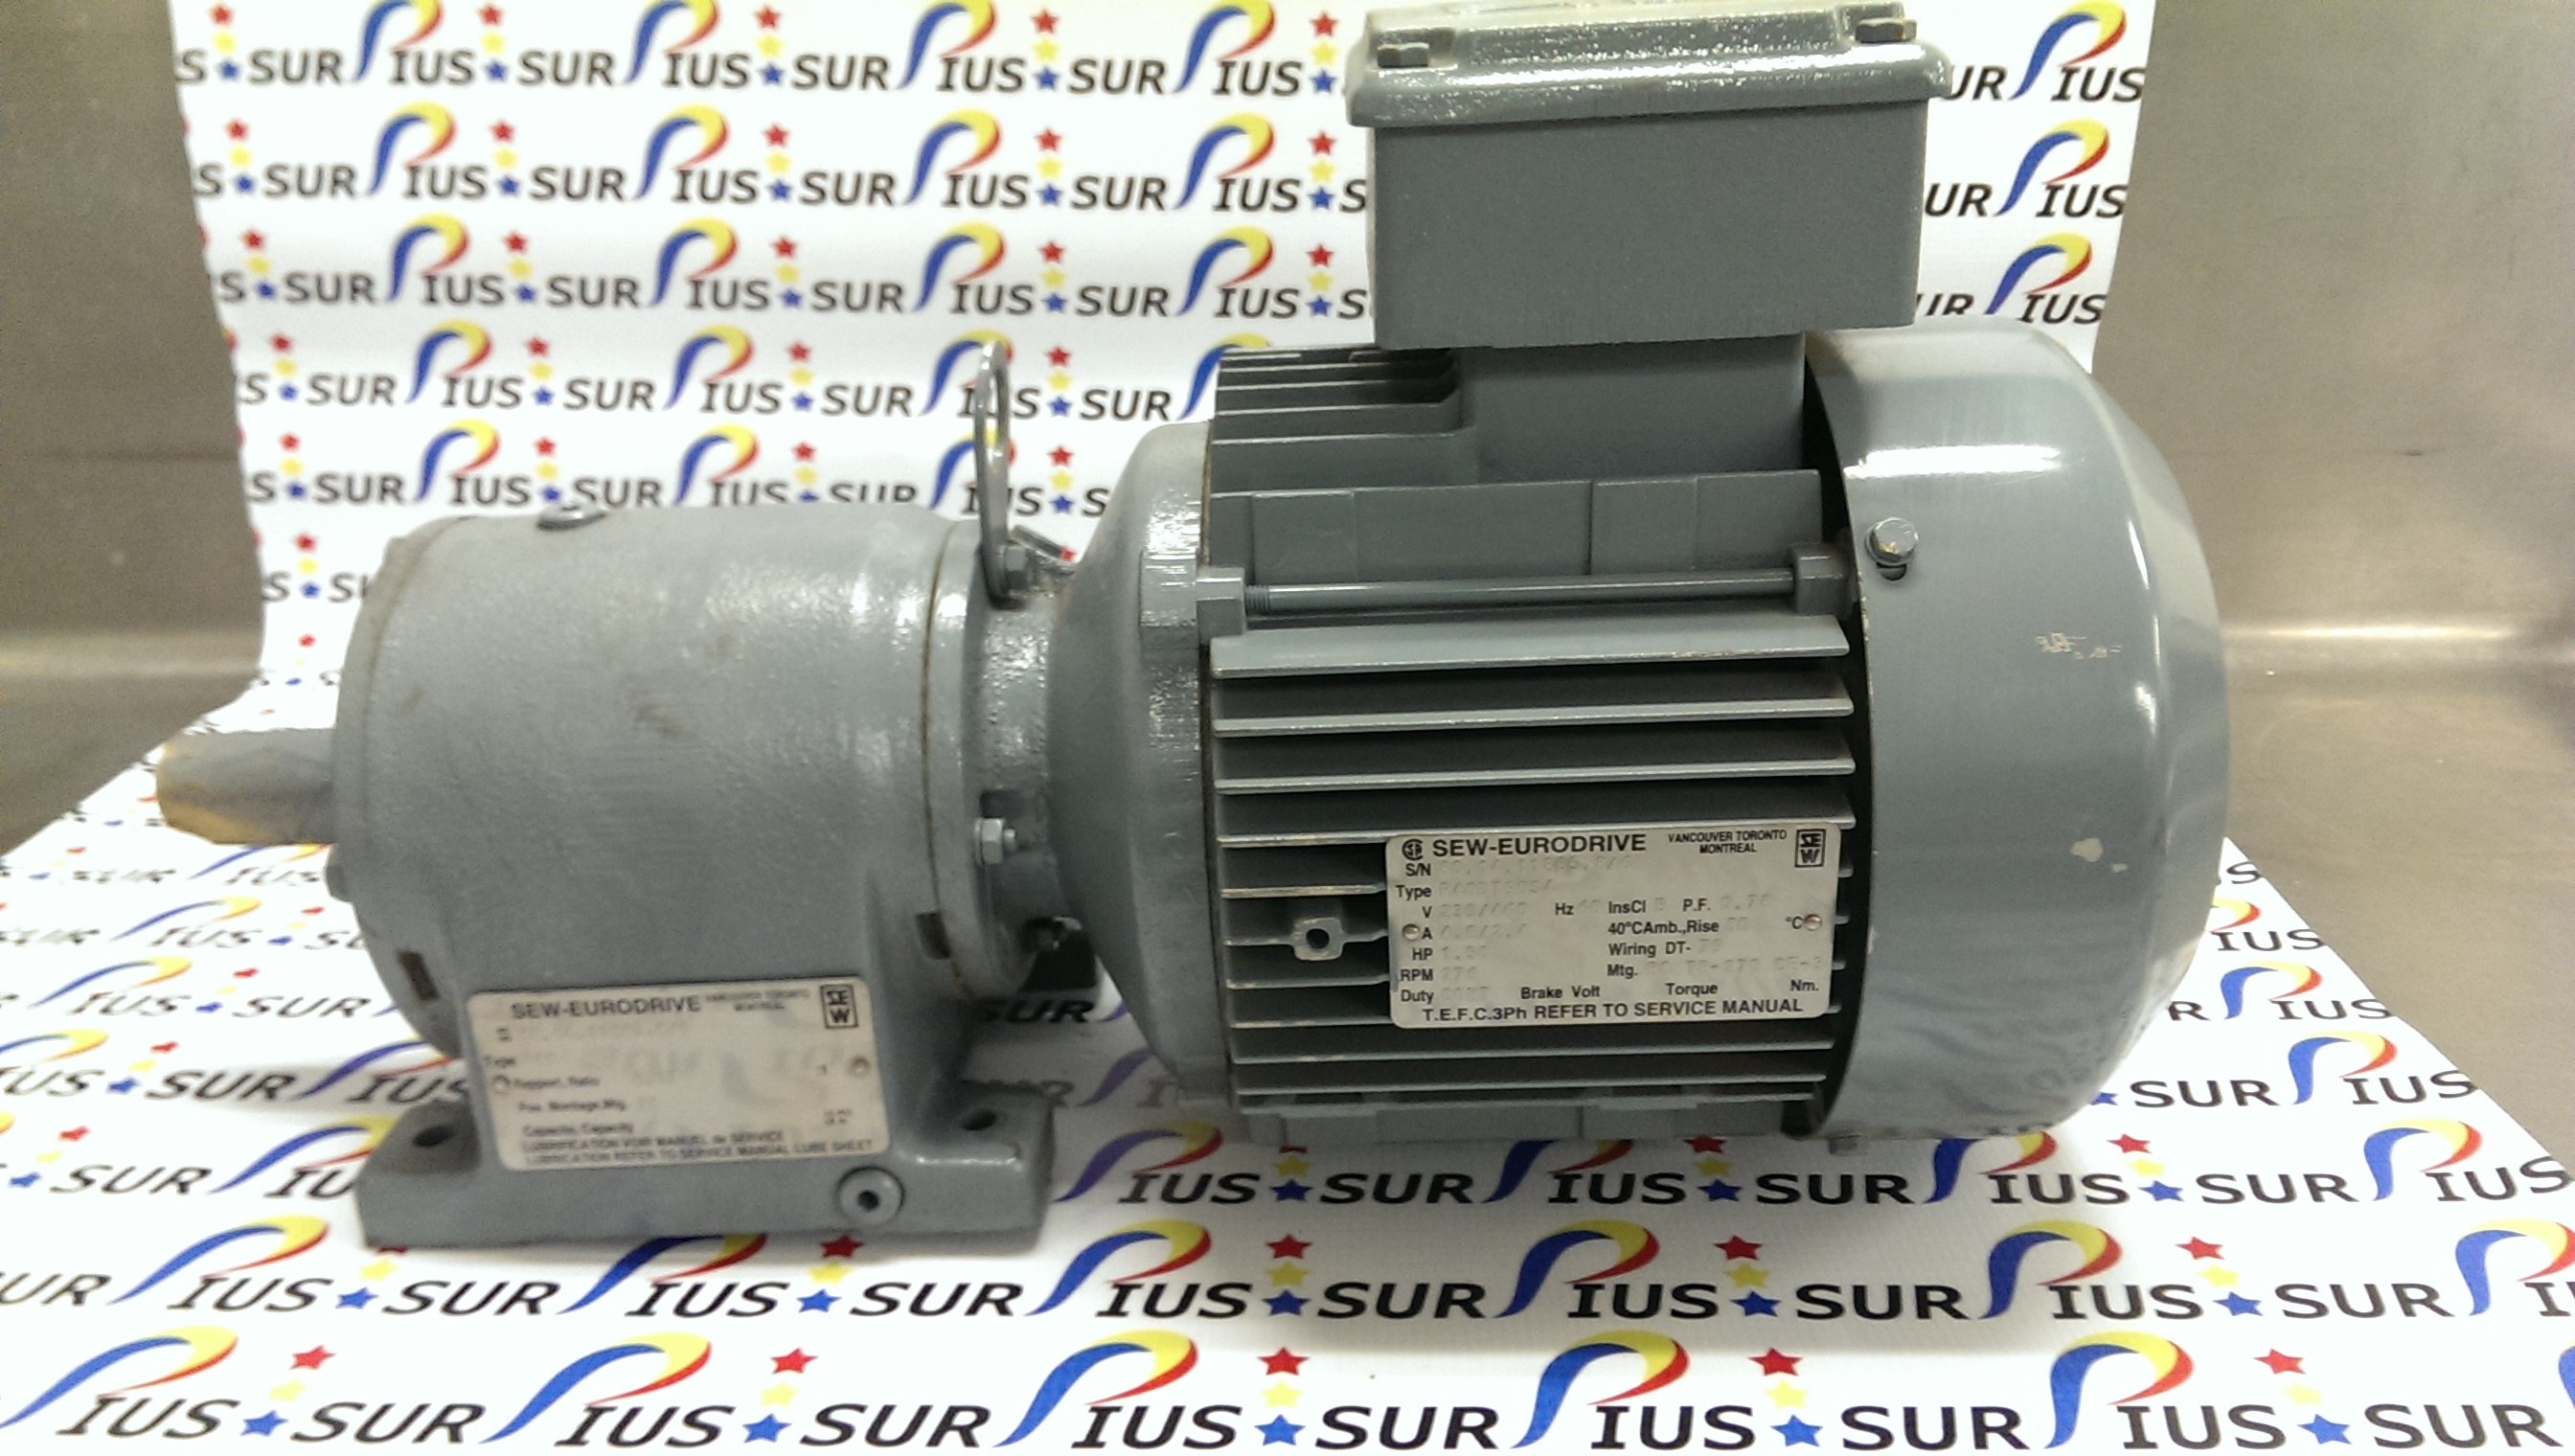 Awe Inspiring Sew Eurodrive 1 5Hp Electric Motor R40Dt90S4 R40 6 17 1 276Rpm 230 Wiring Digital Resources Ommitdefiancerspsorg